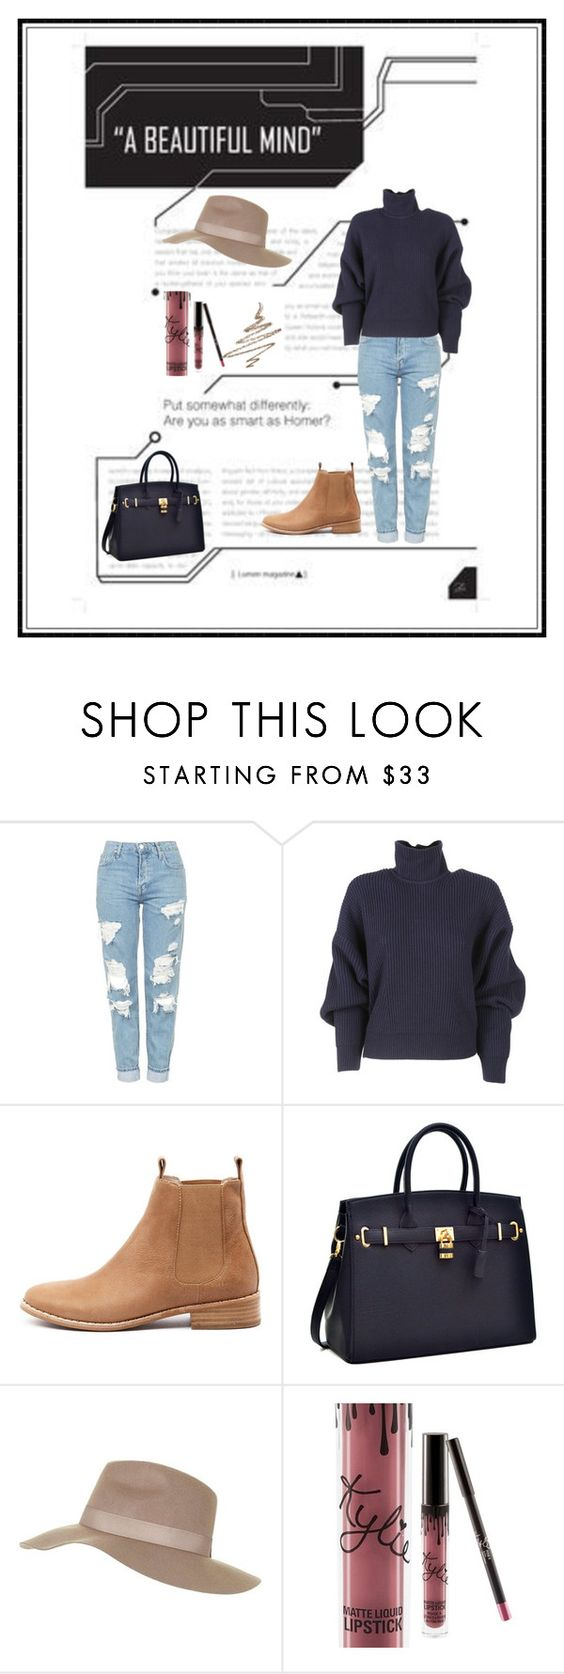 """""""Untitled #527"""" by haya-kamel1 ❤ liked on Polyvore featuring Topshop, Balenciaga, Mollini, Kylie Cosmetics and Anastasia Beverly Hills"""